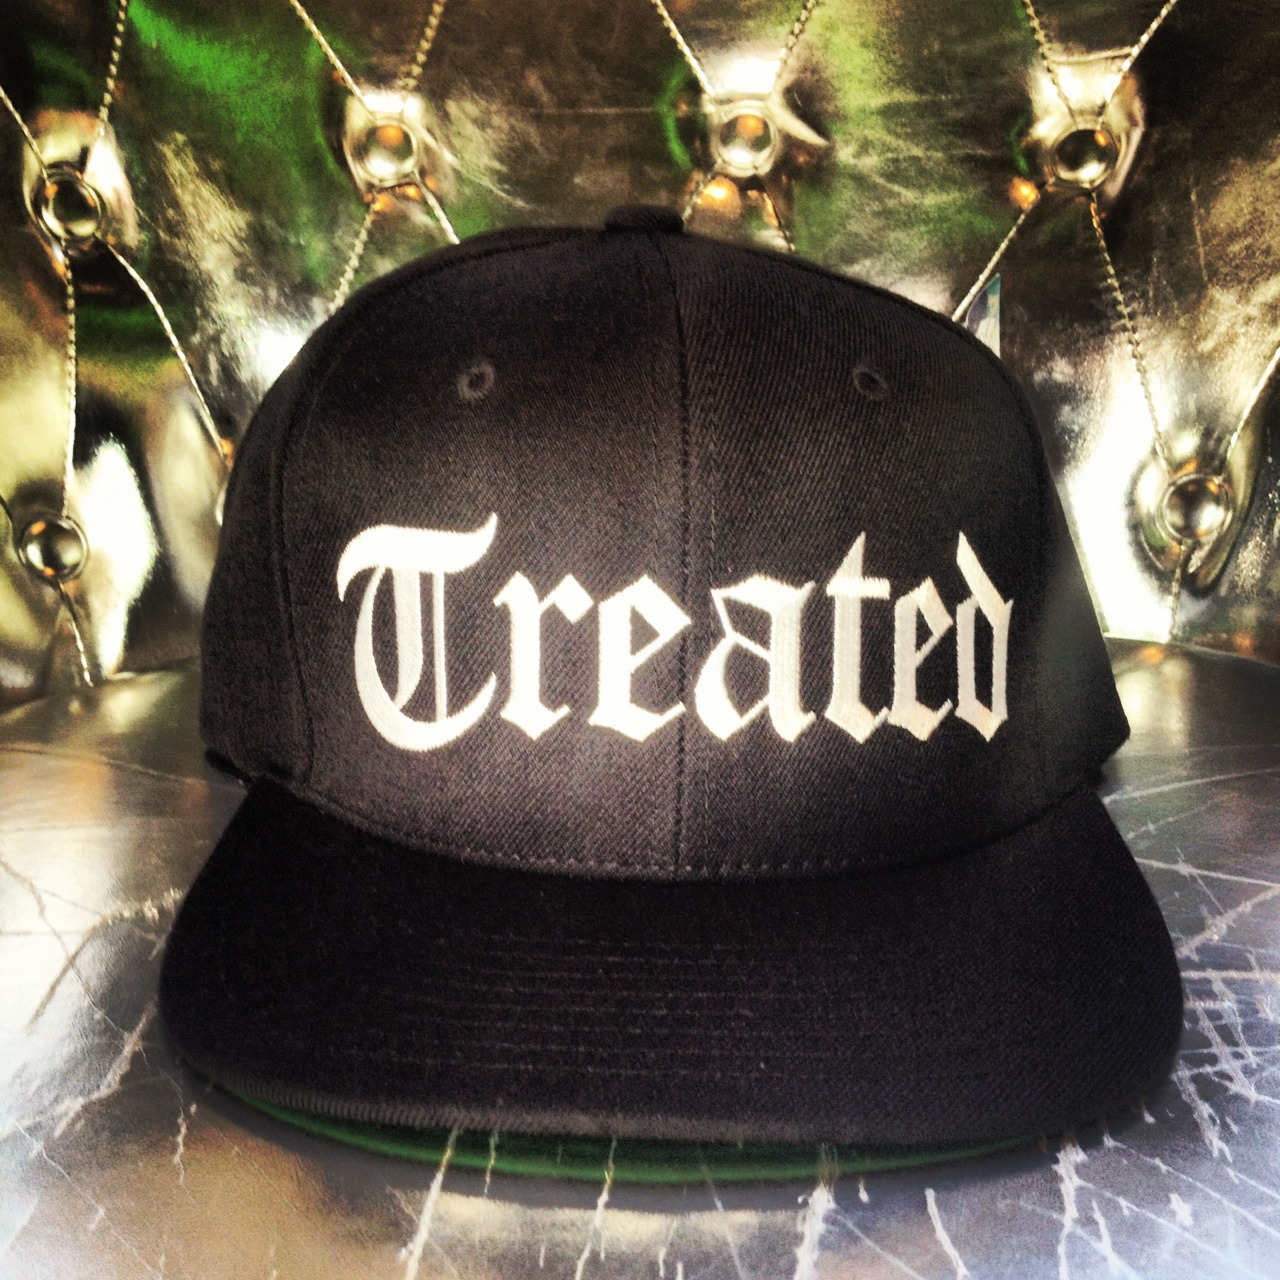 #treatedcrew